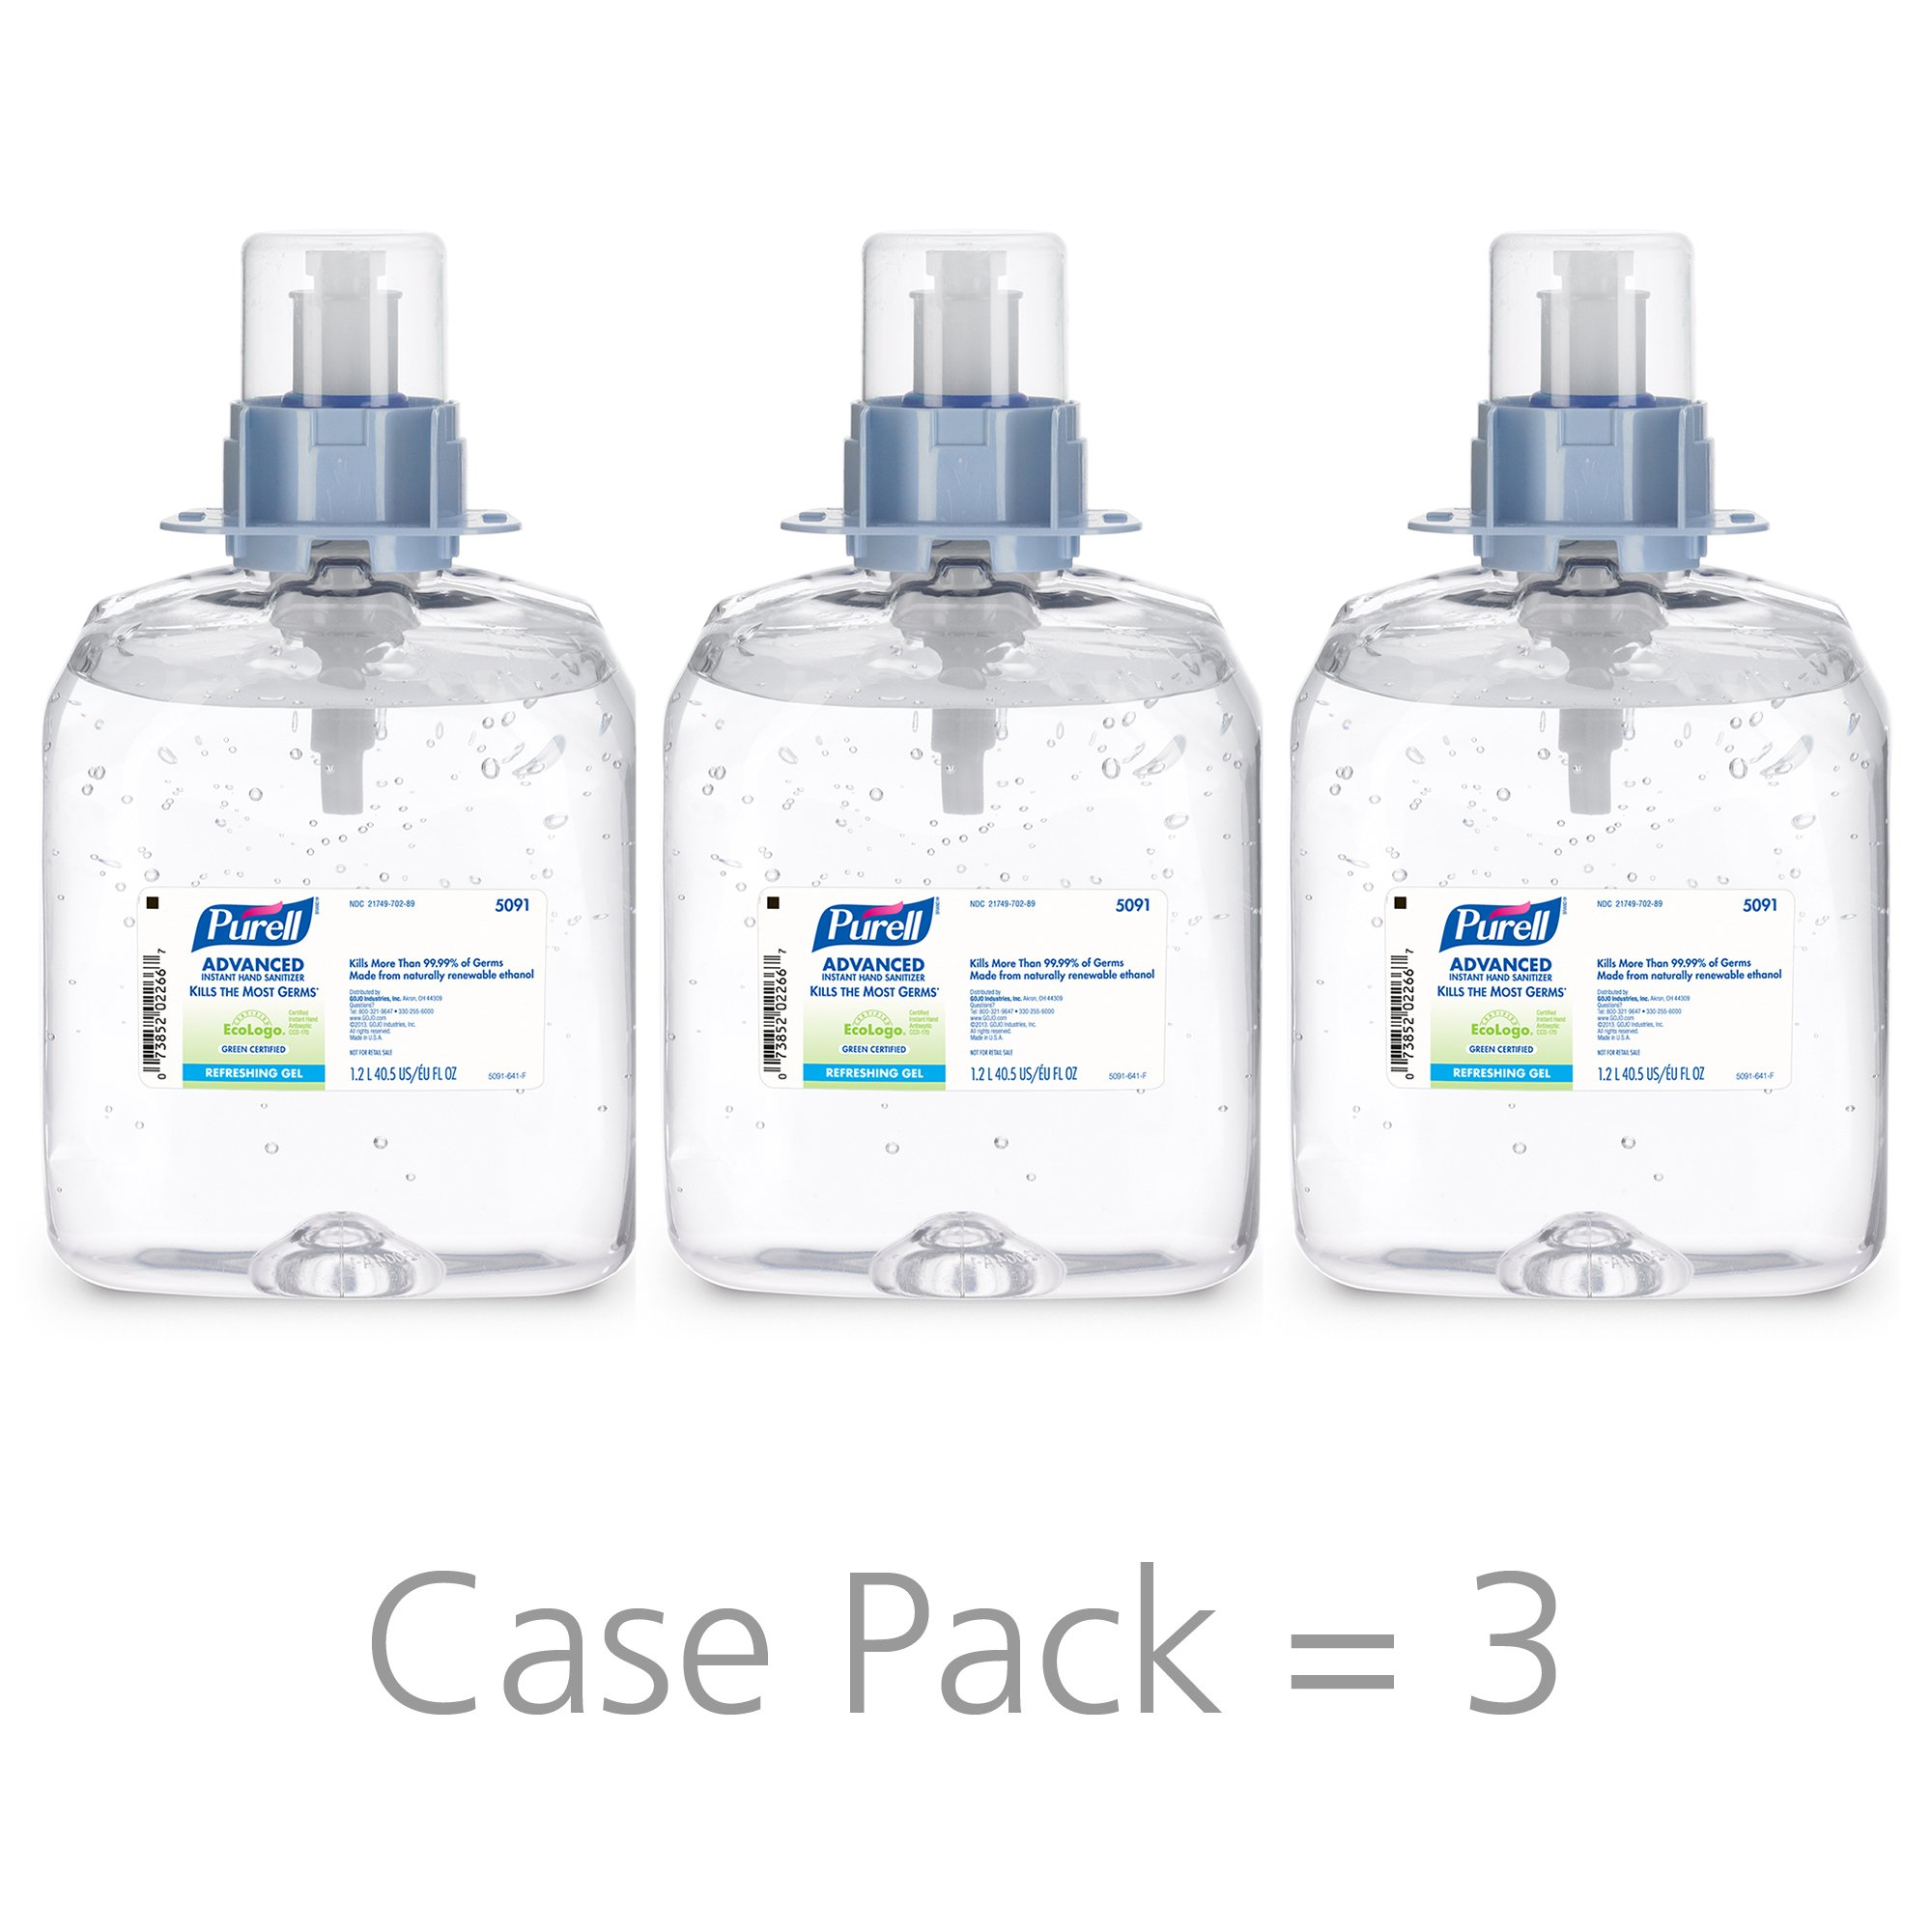 PURELL FMX-12 Advanced Green Certified Hand Sanitizer Gel, Fragrance Free, 1200 mL Sanitizer Refills for PURELL FMX-12 Push-Style Dispenser (Case of 3) - 5091-03